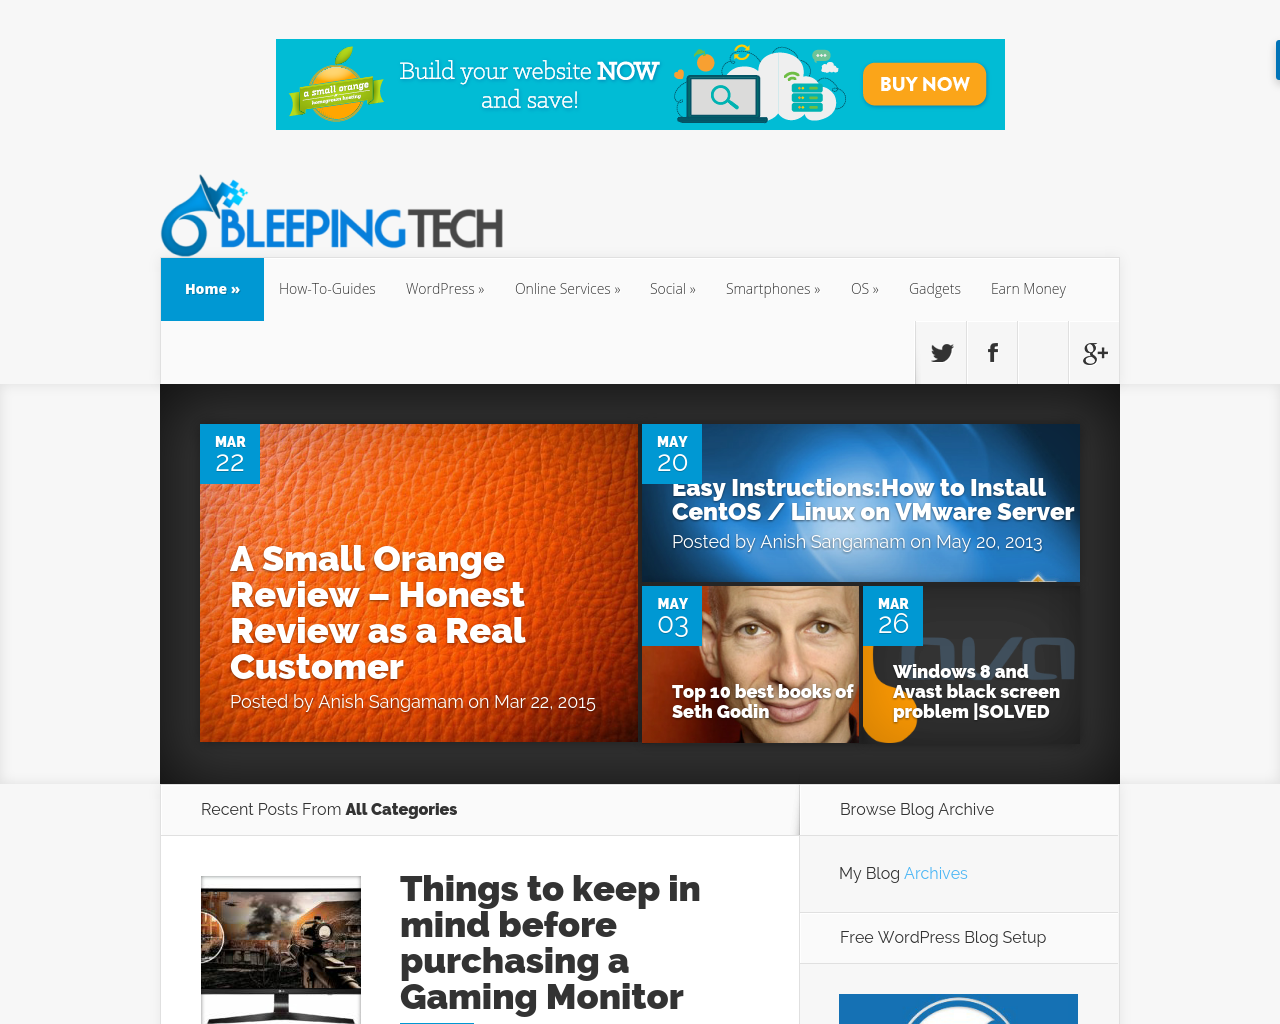 BleepingTech-Advertising-Reviews-Pricing